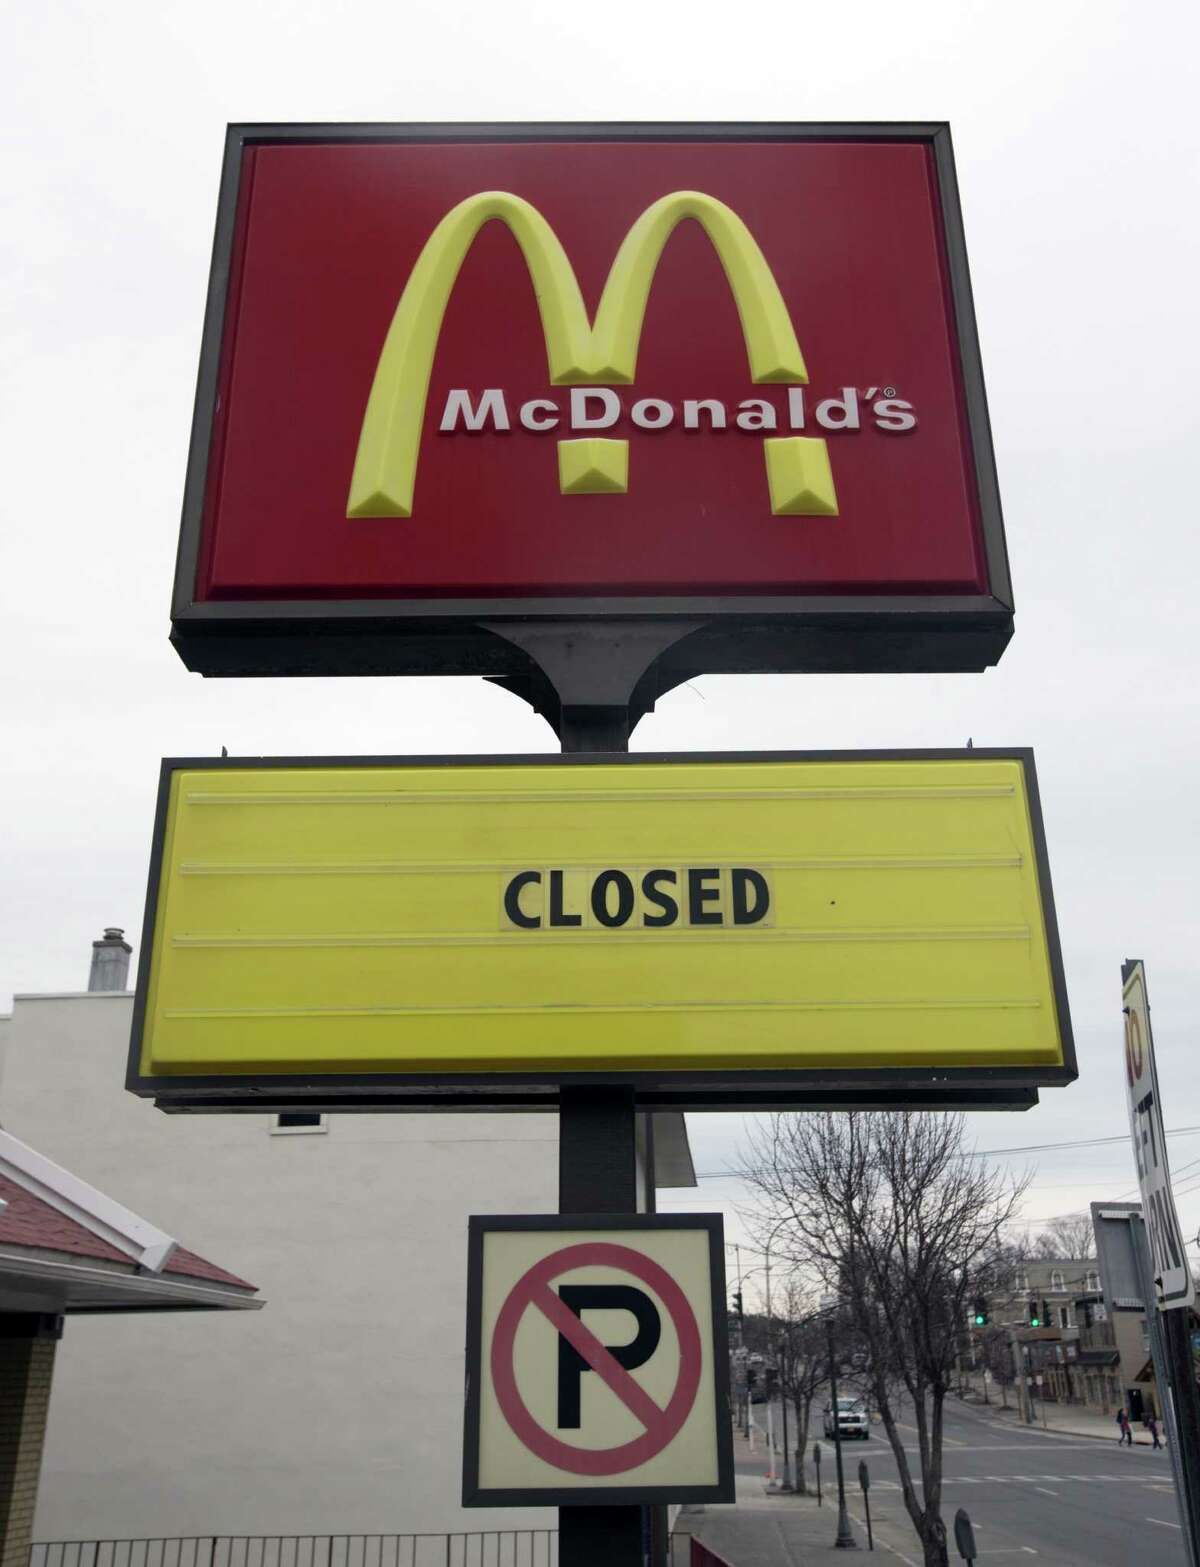 FILE - In this April 8, 2015, file photo, a seasonal McDonald's is closed for the winter in Lake George, N.Y. For the first time in more than 40 years, and perhaps ever, the number of McDonalds restaurants in the U.S. is shrinking. (AP Photo/Mike Groll, File) ORG XMIT: NYBZ107